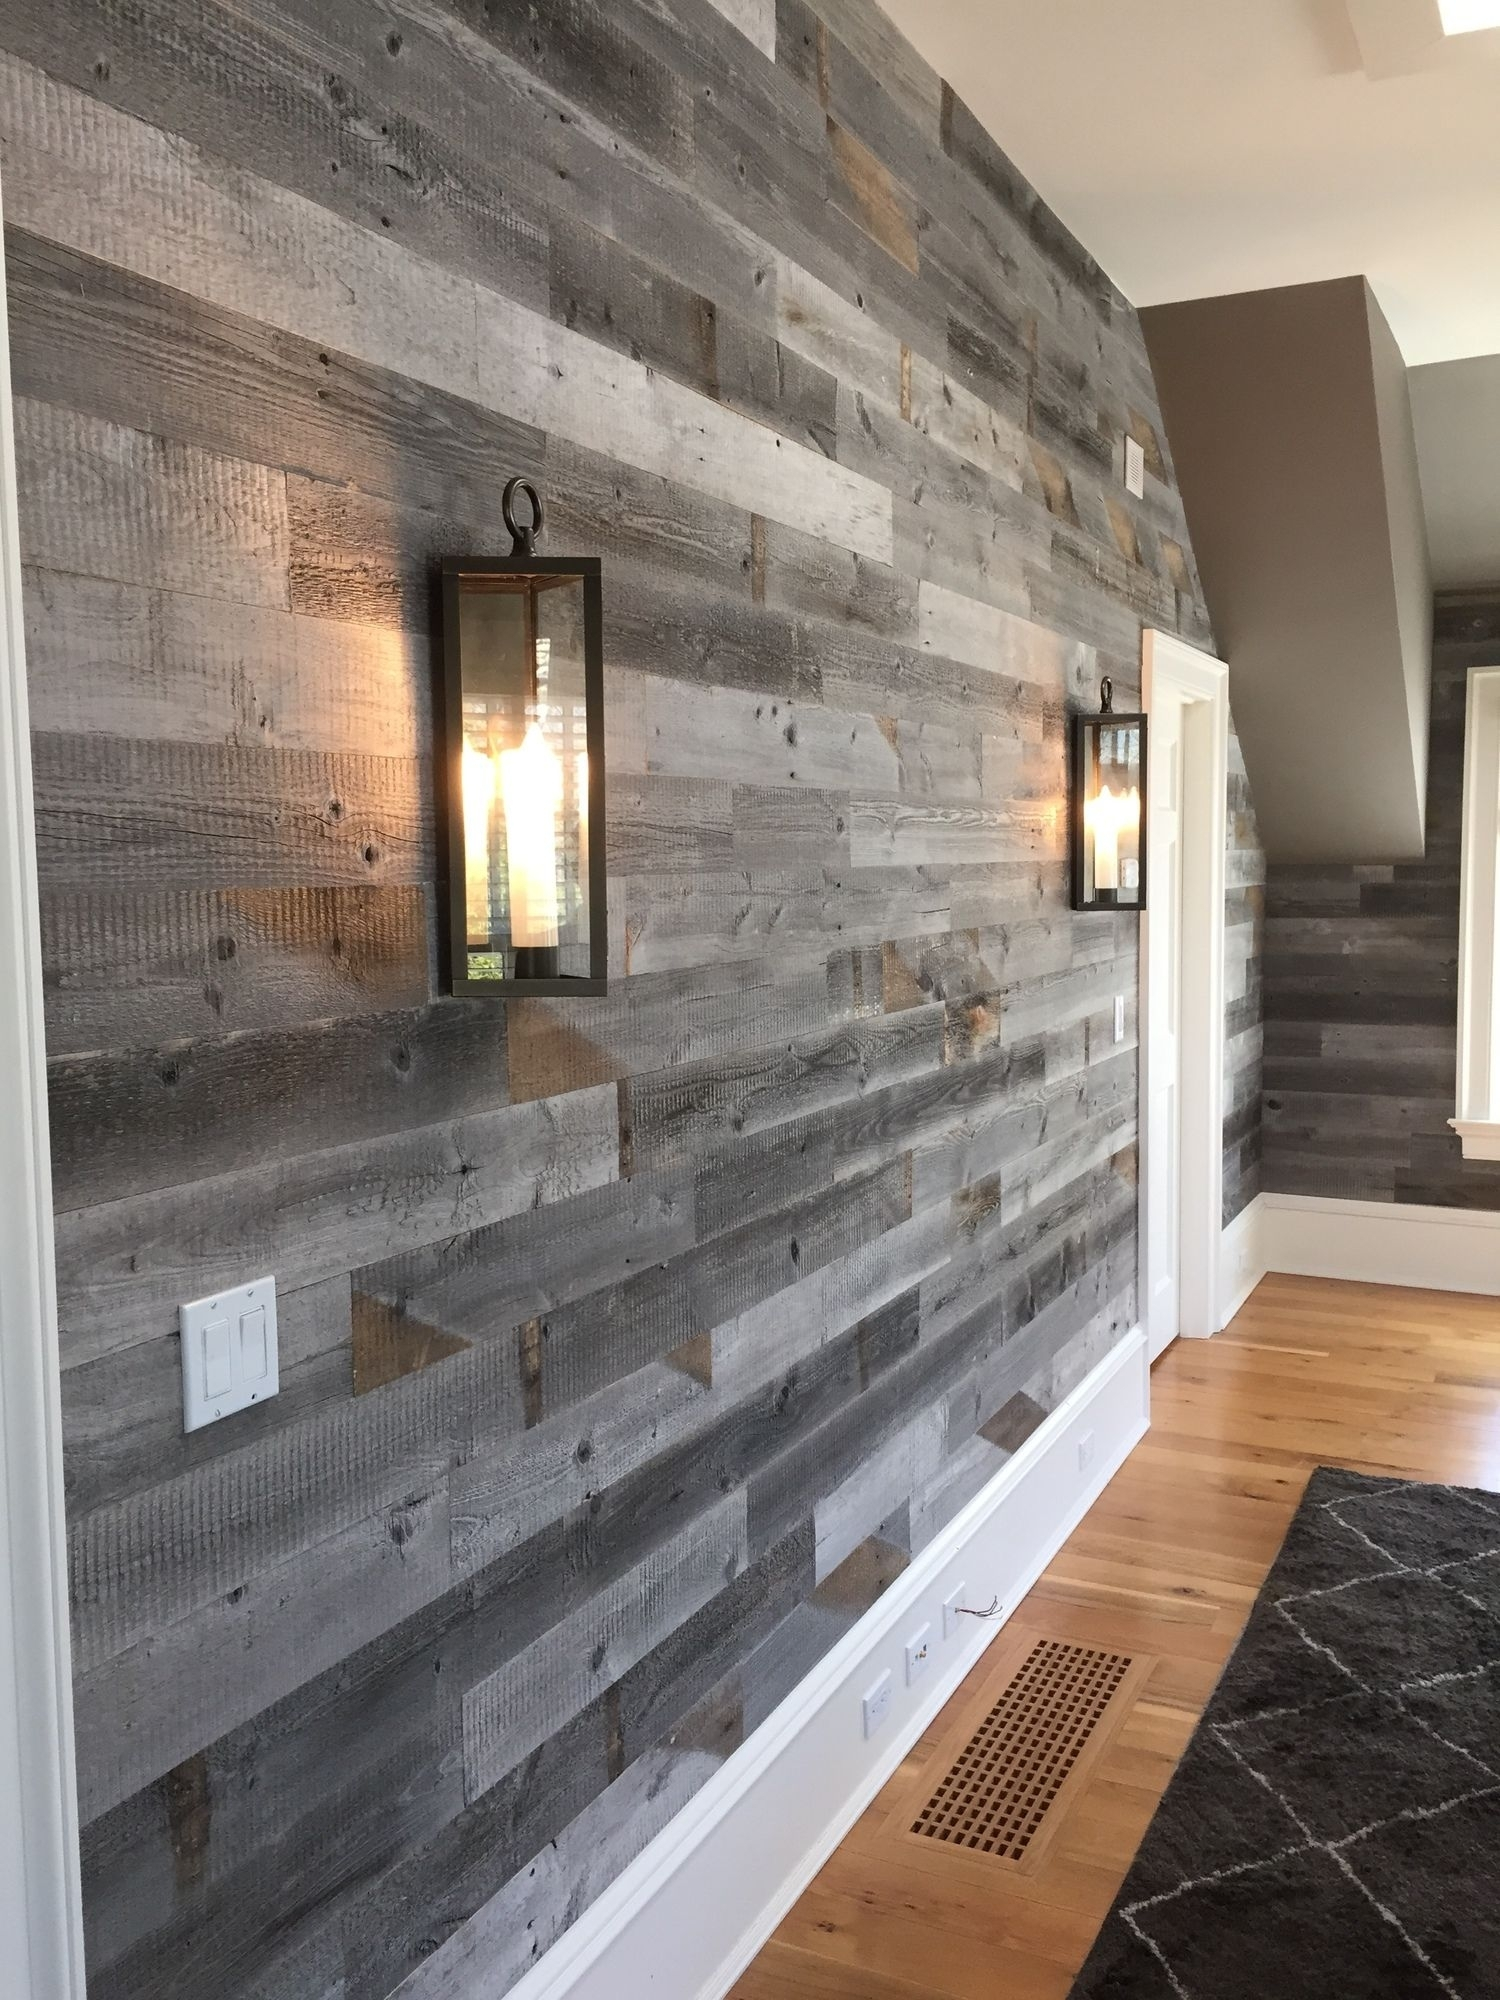 Reclaimed Weathered Wood | Wood Walls, Compliments And Woods Pertaining To Most Popular Reclaimed Wood Wall Accents (Gallery 12 of 15)